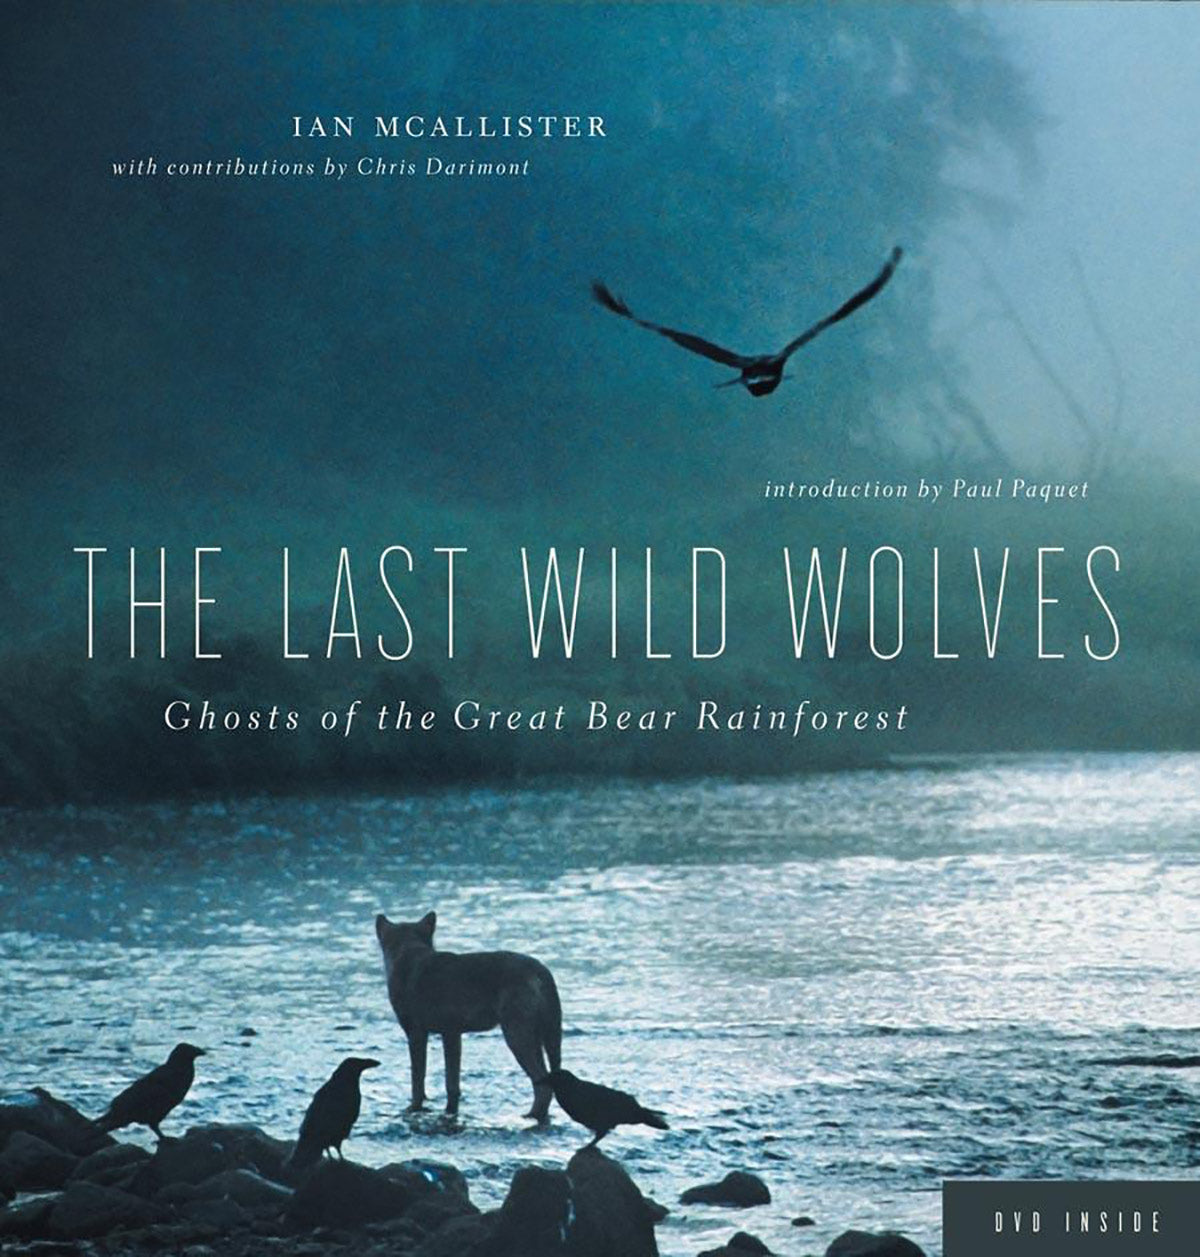 The Last Wild Wolves by Ian McAllister